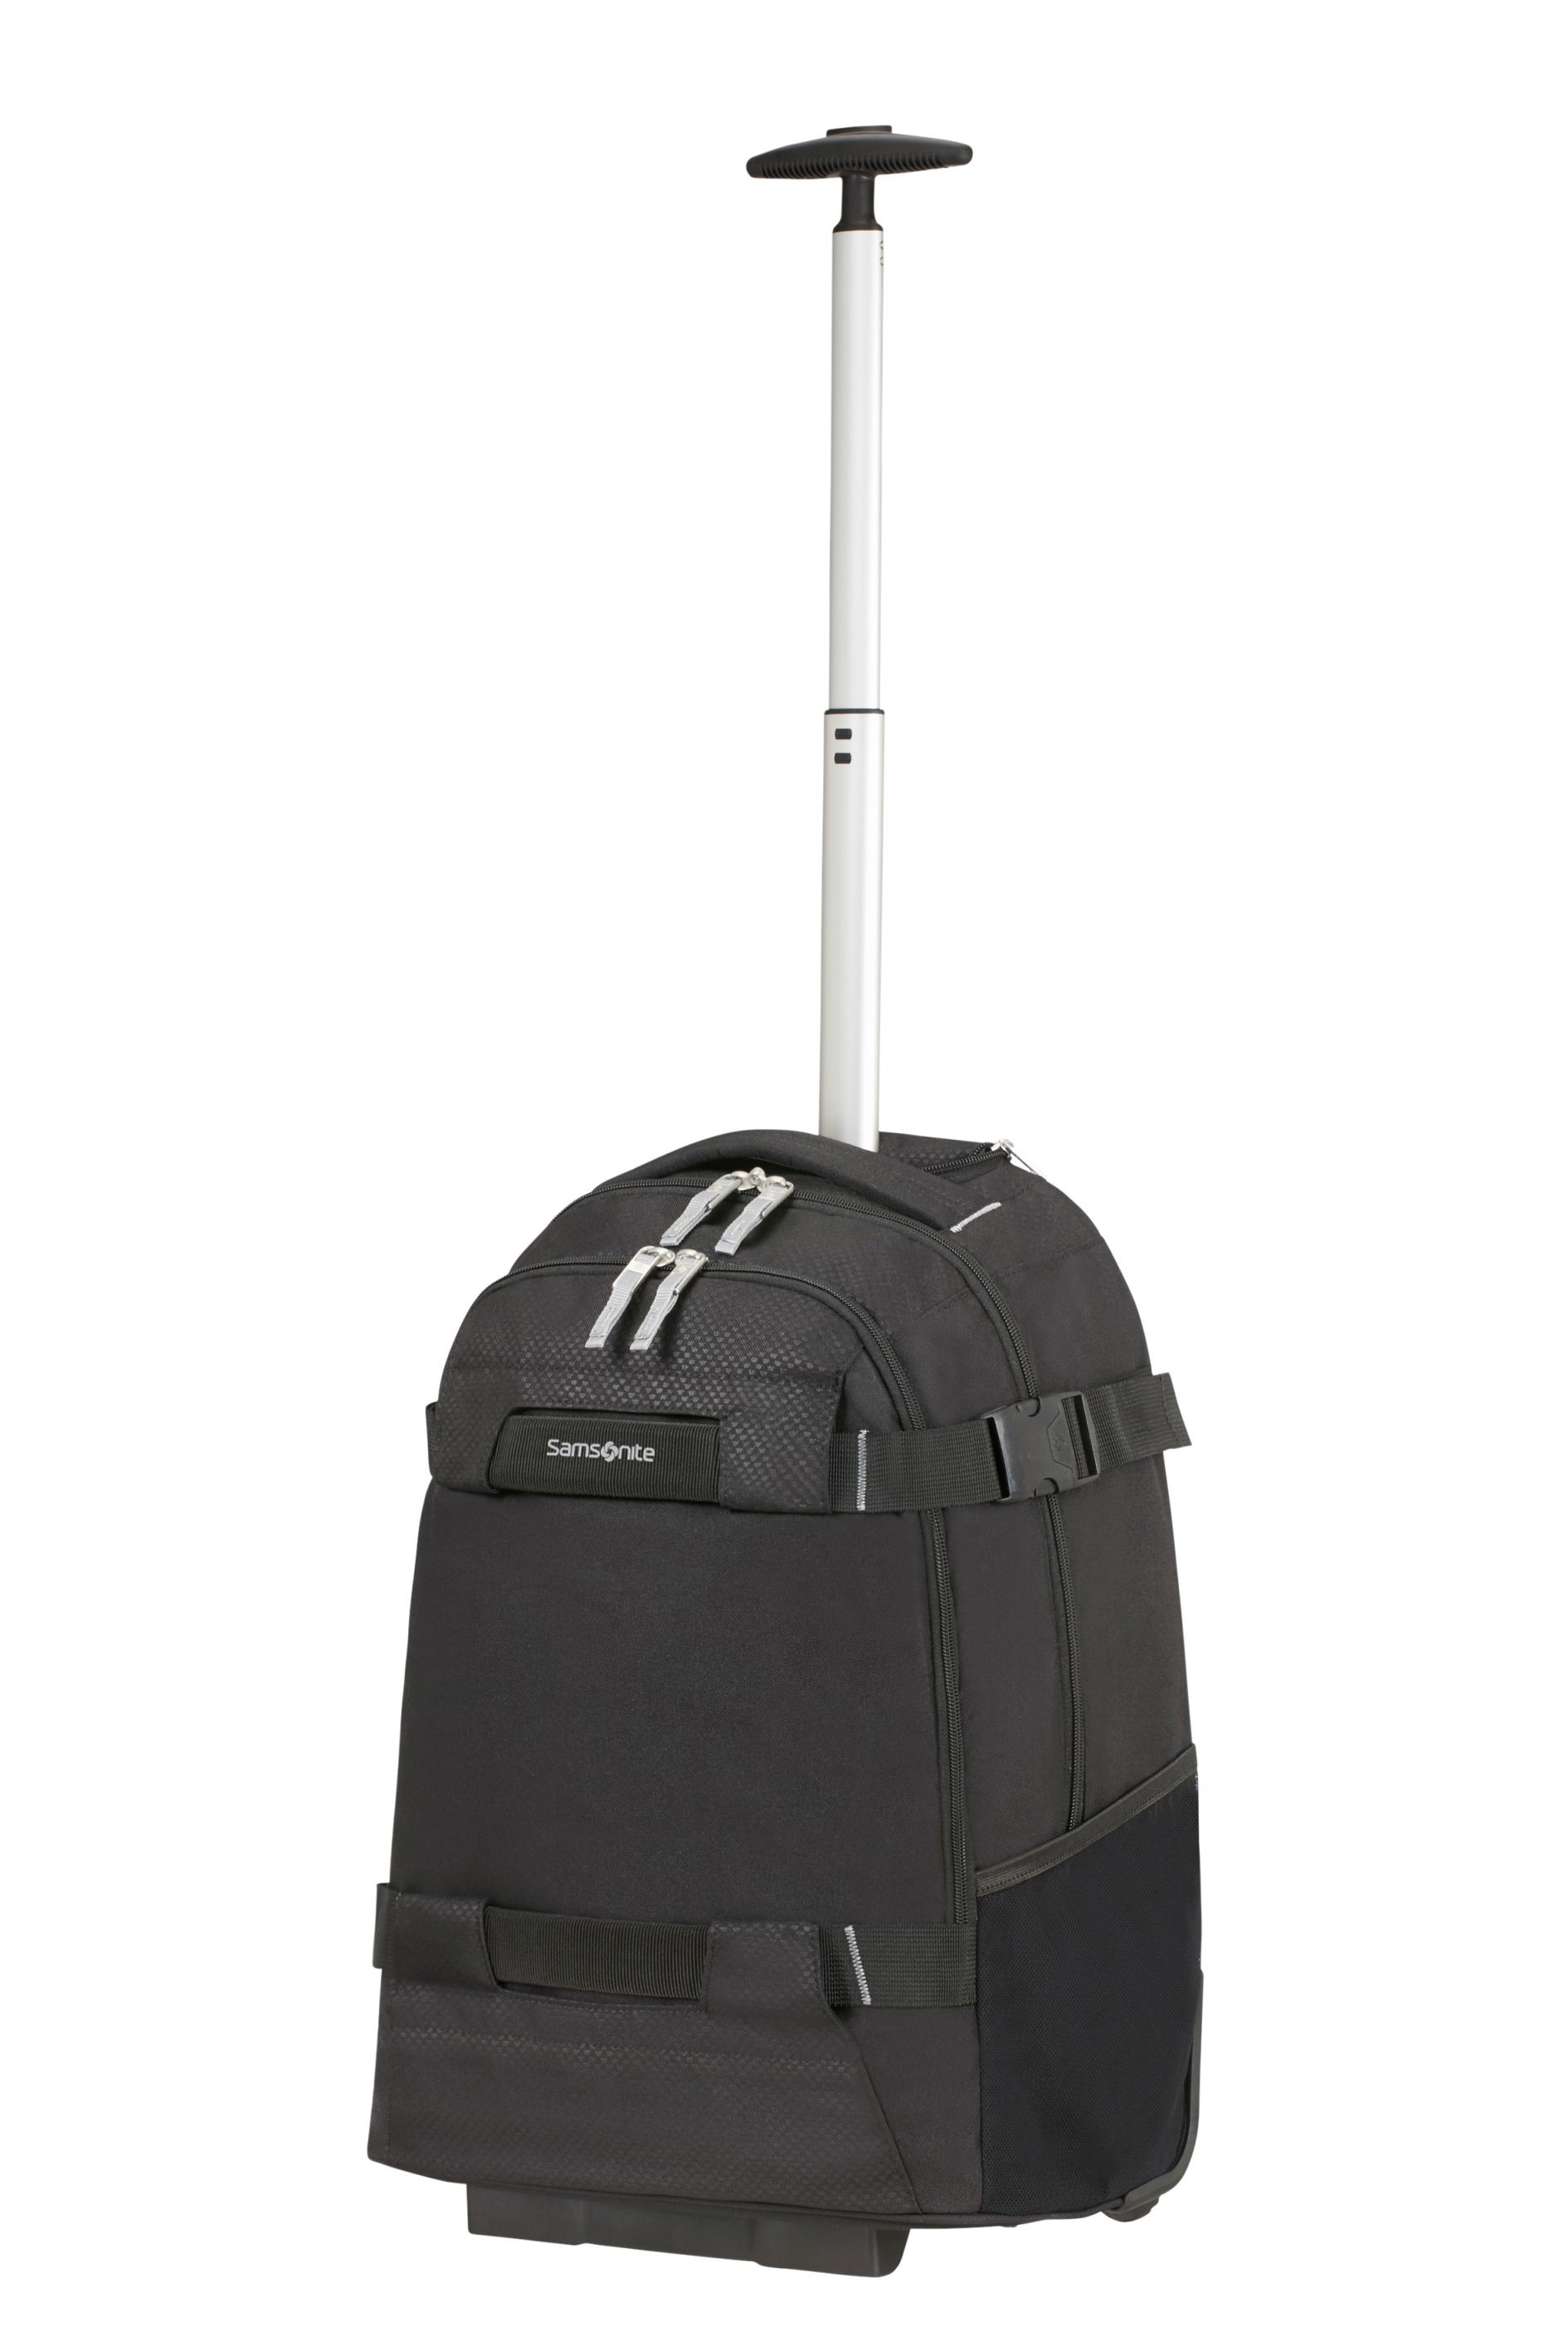 Samsonite Sonora Laptop Backpack/wh 55, View 8